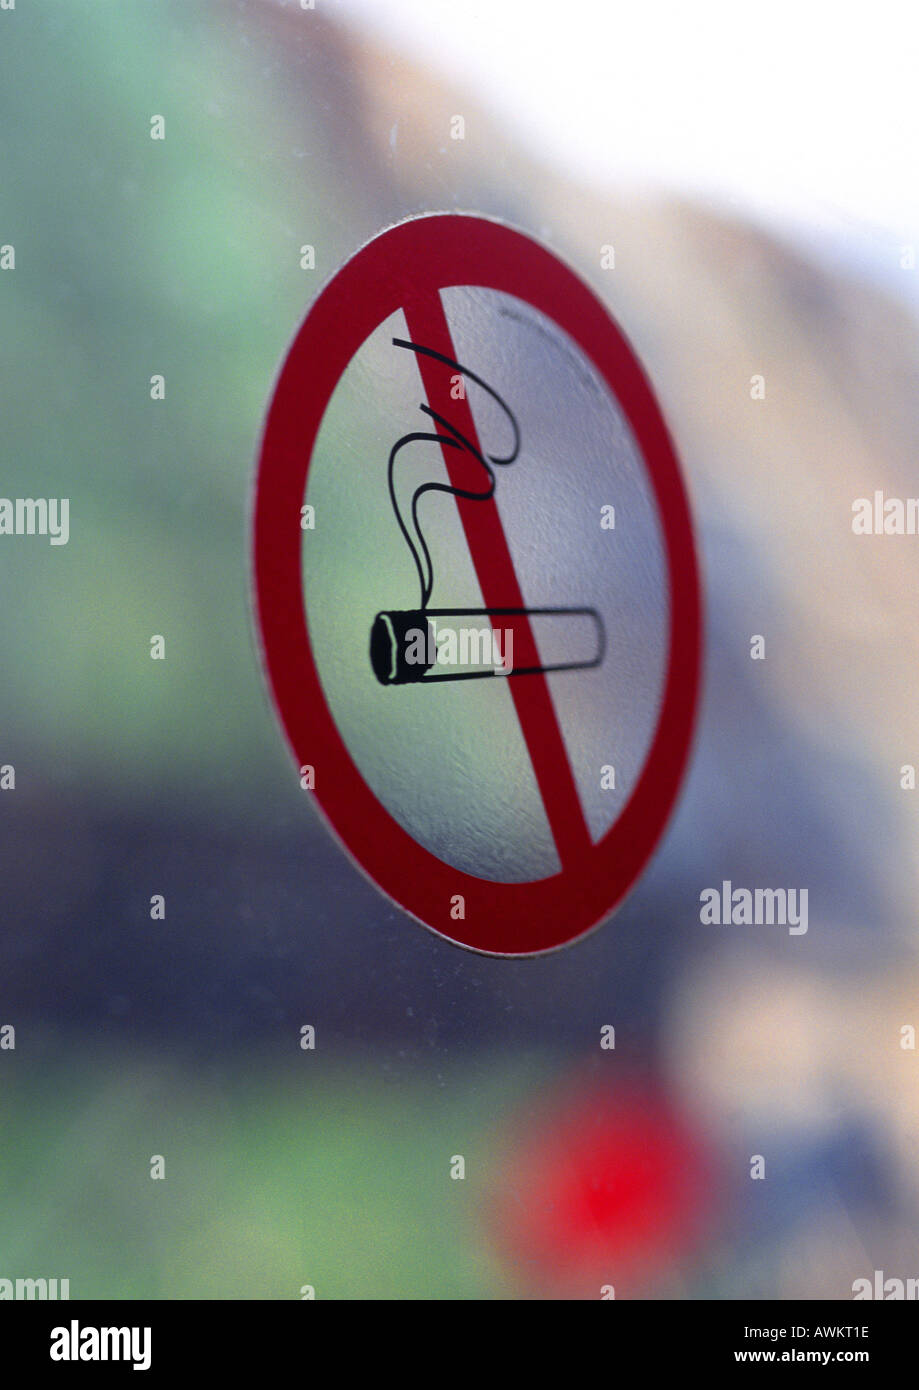 No smoking symbol close up stock photo royalty free image 5422109 no smoking symbol close up buycottarizona Images